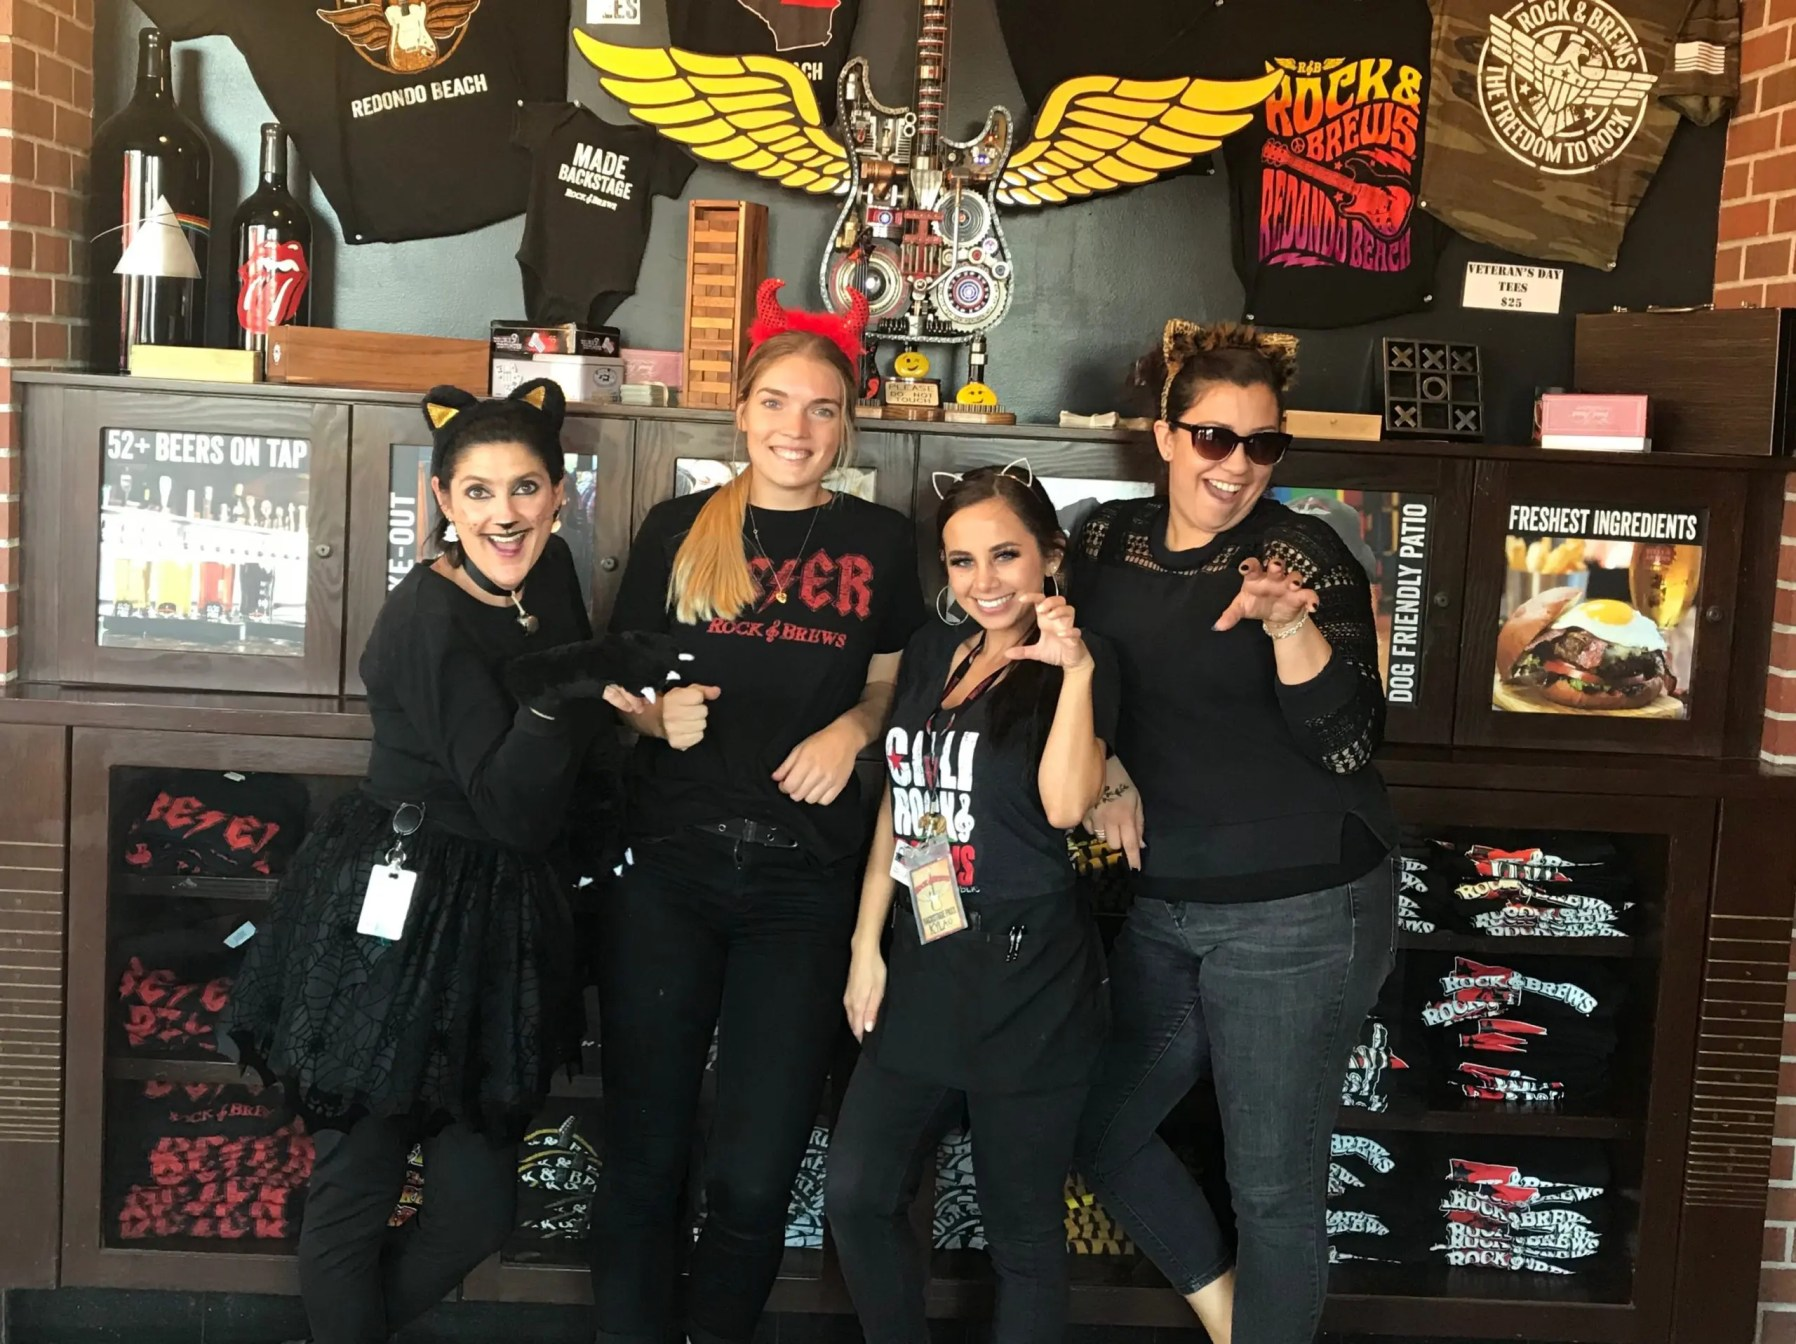 Photography Provided By: Rock & Brews